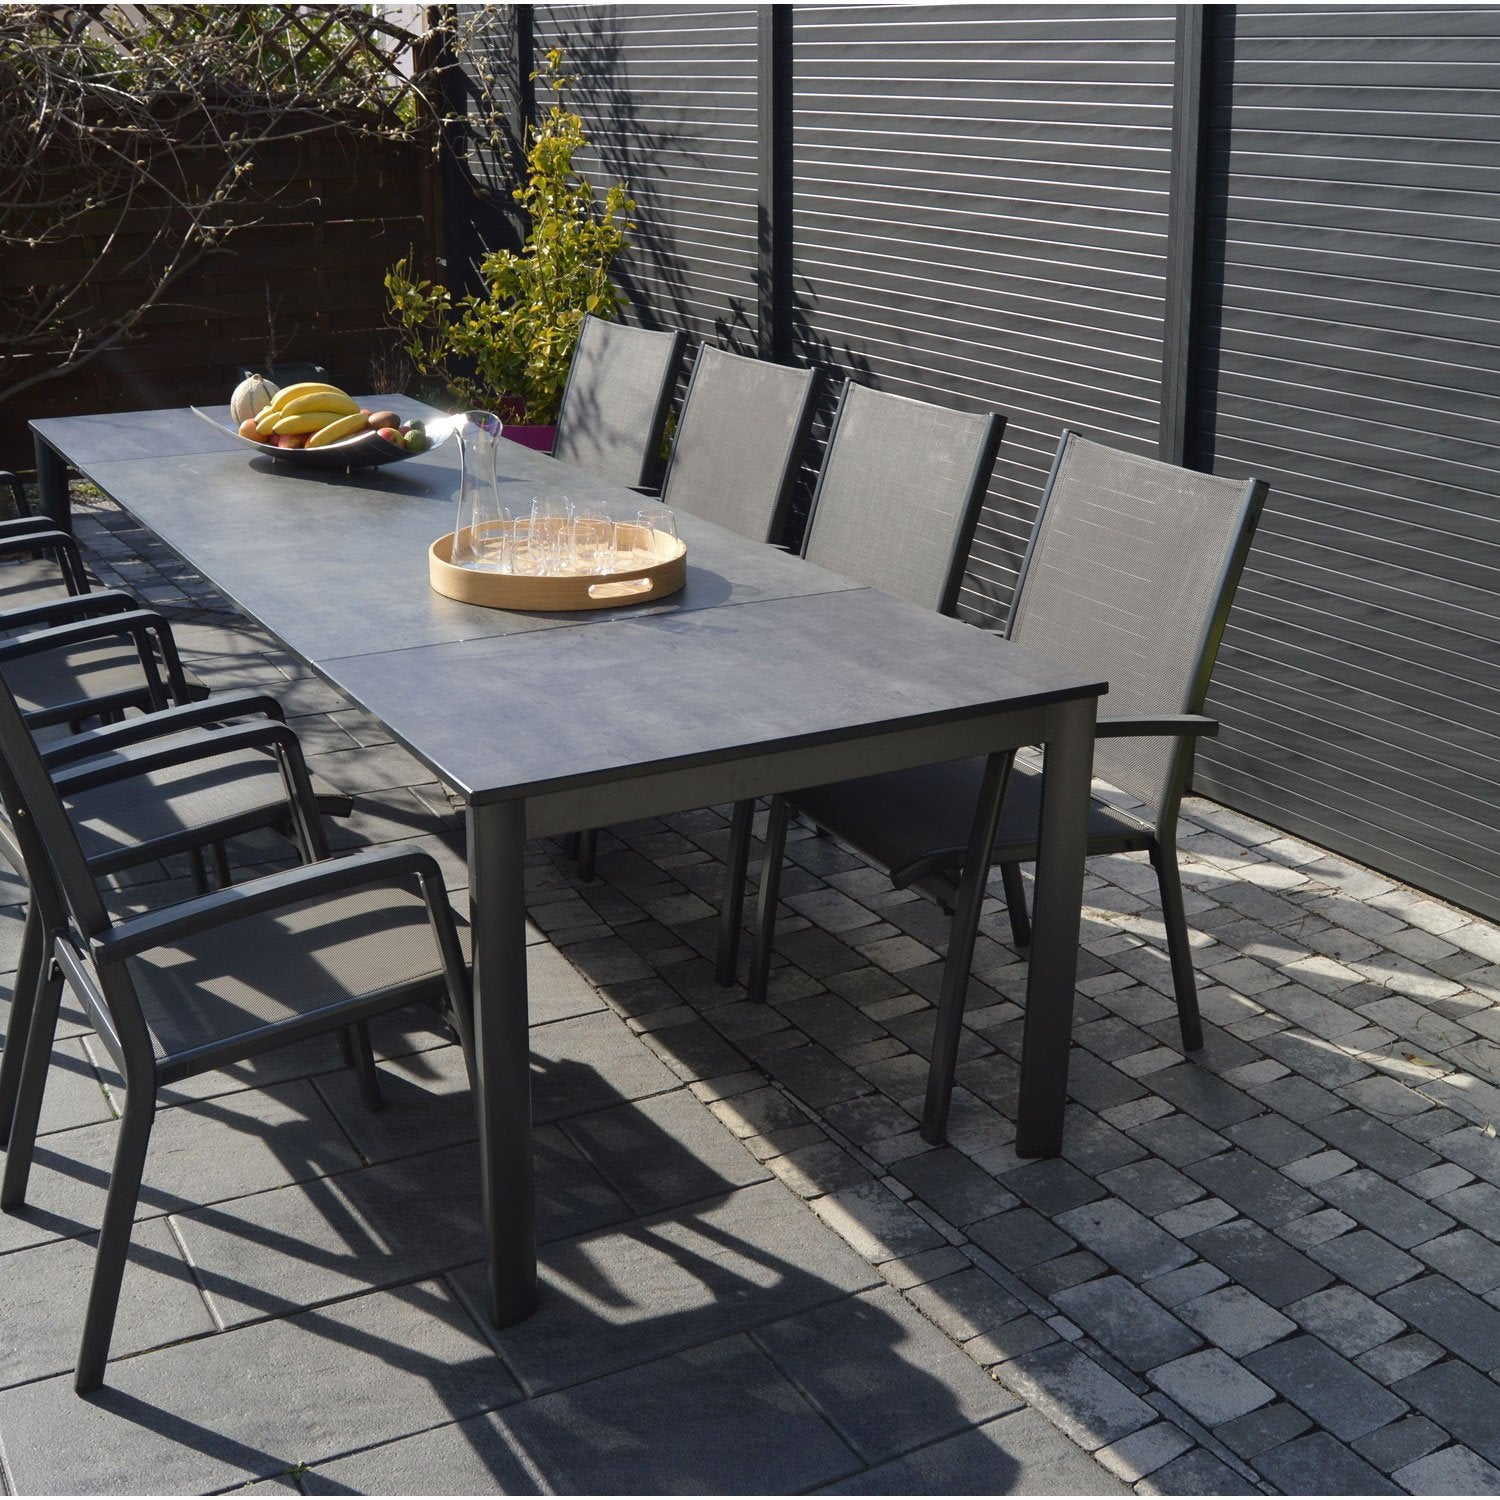 Salon de jardin puroplan aluminium gris anthracite 10 - Table salon de jardin alu et composite ...